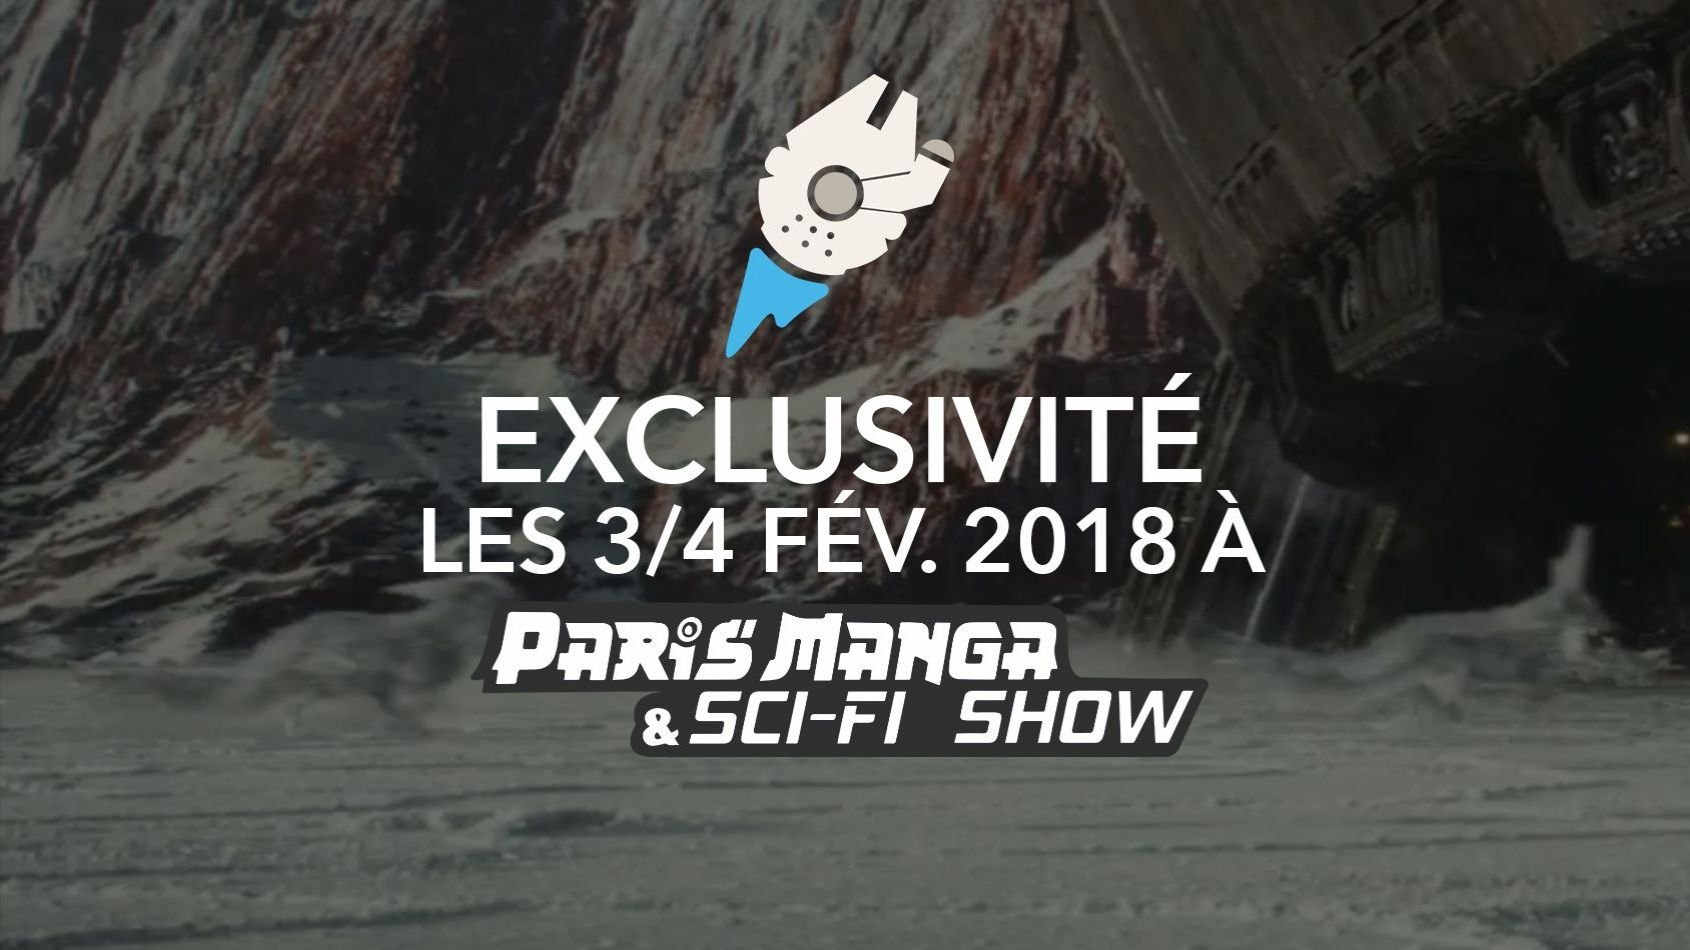 Exclusivité au Paris Manga et Sci-Fi show ce week-end !